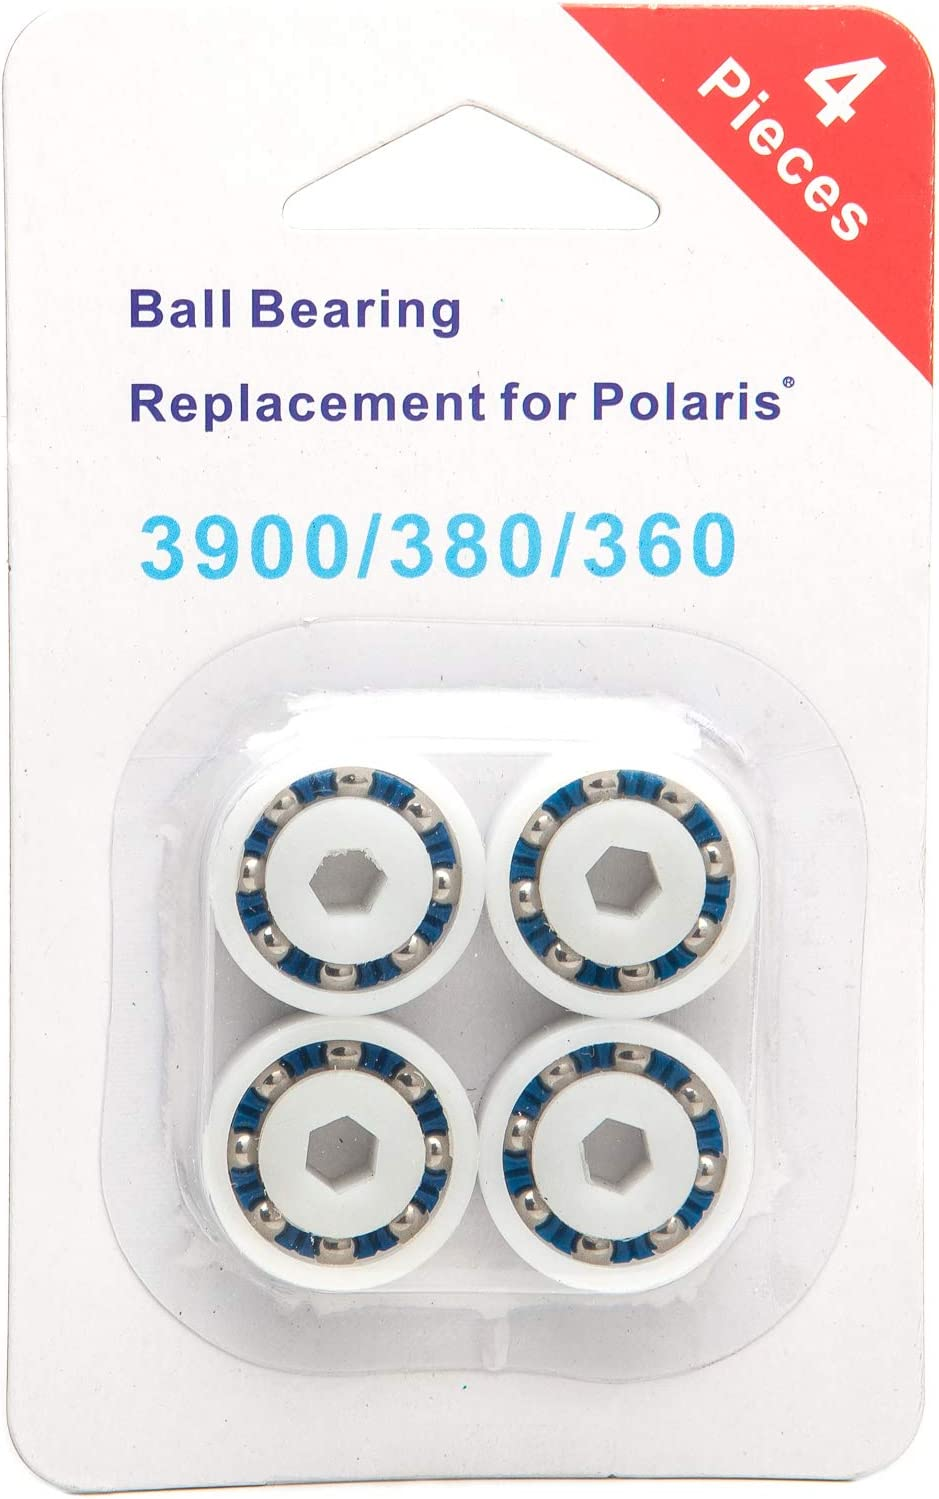 PoolSupplyTown 4 Pack Wheel Ball Bearing Replacement for Polaris 360, 380, 3900 Sport, ATV Pool Cleaners Part No. 9-100-1108